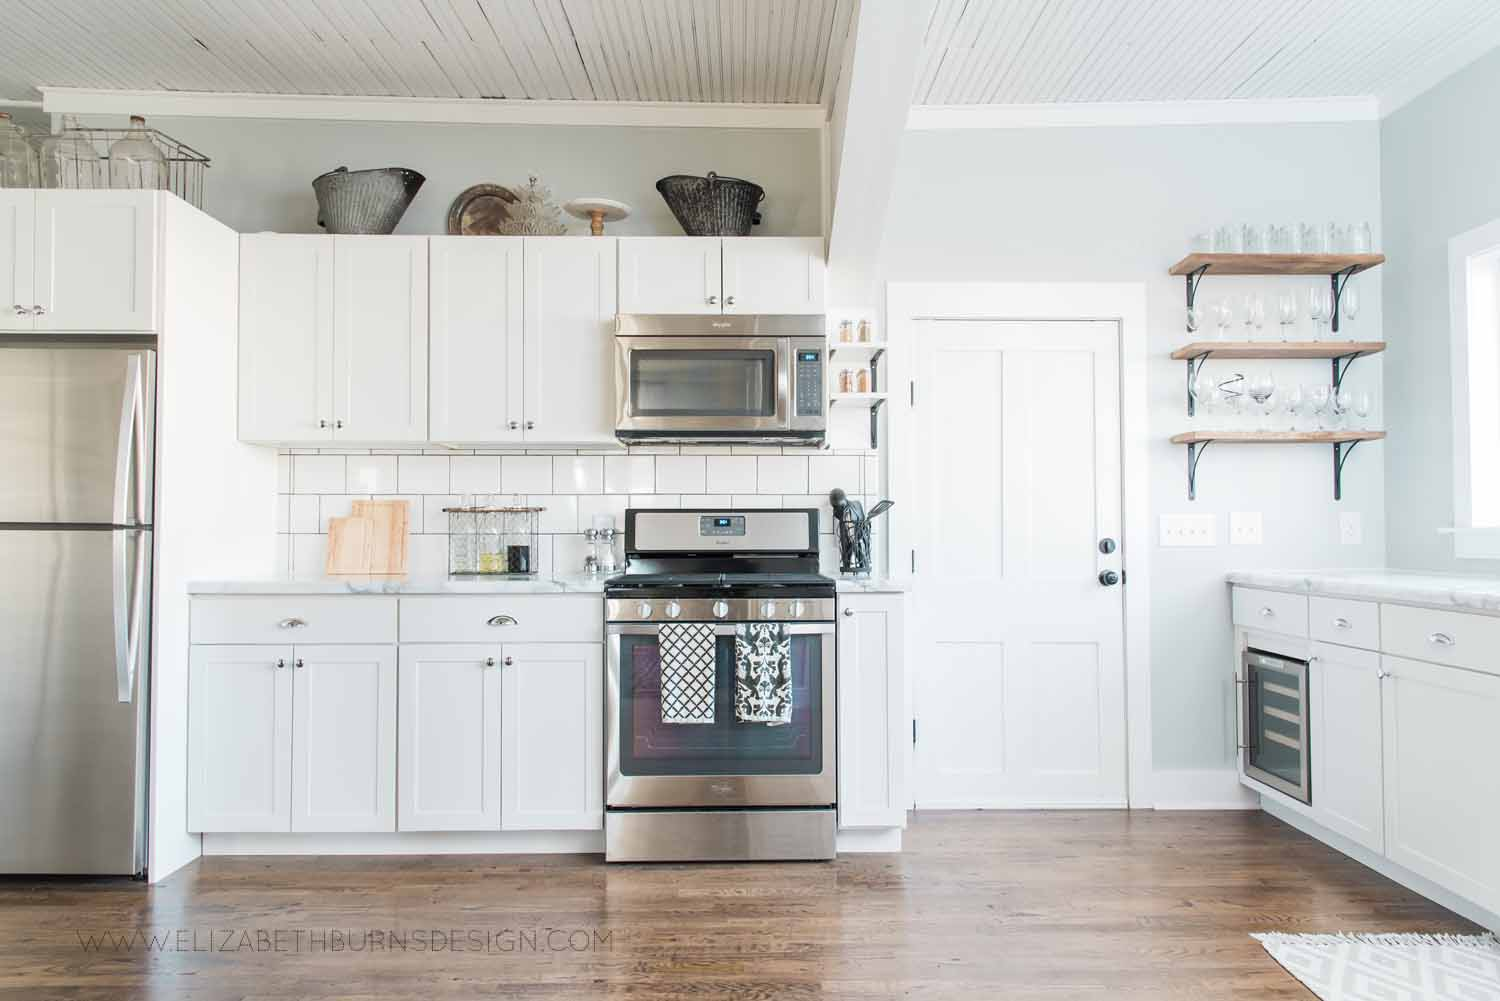 Elizabeth Burns Design Raleigh Interior Designer  Farmhouse Fixer Upper Cottage Renovation, Sherwin Williams Silver Strand SW 7057 White Shaker Cabinets Formica Marble Counters Kitchen (3).jpg